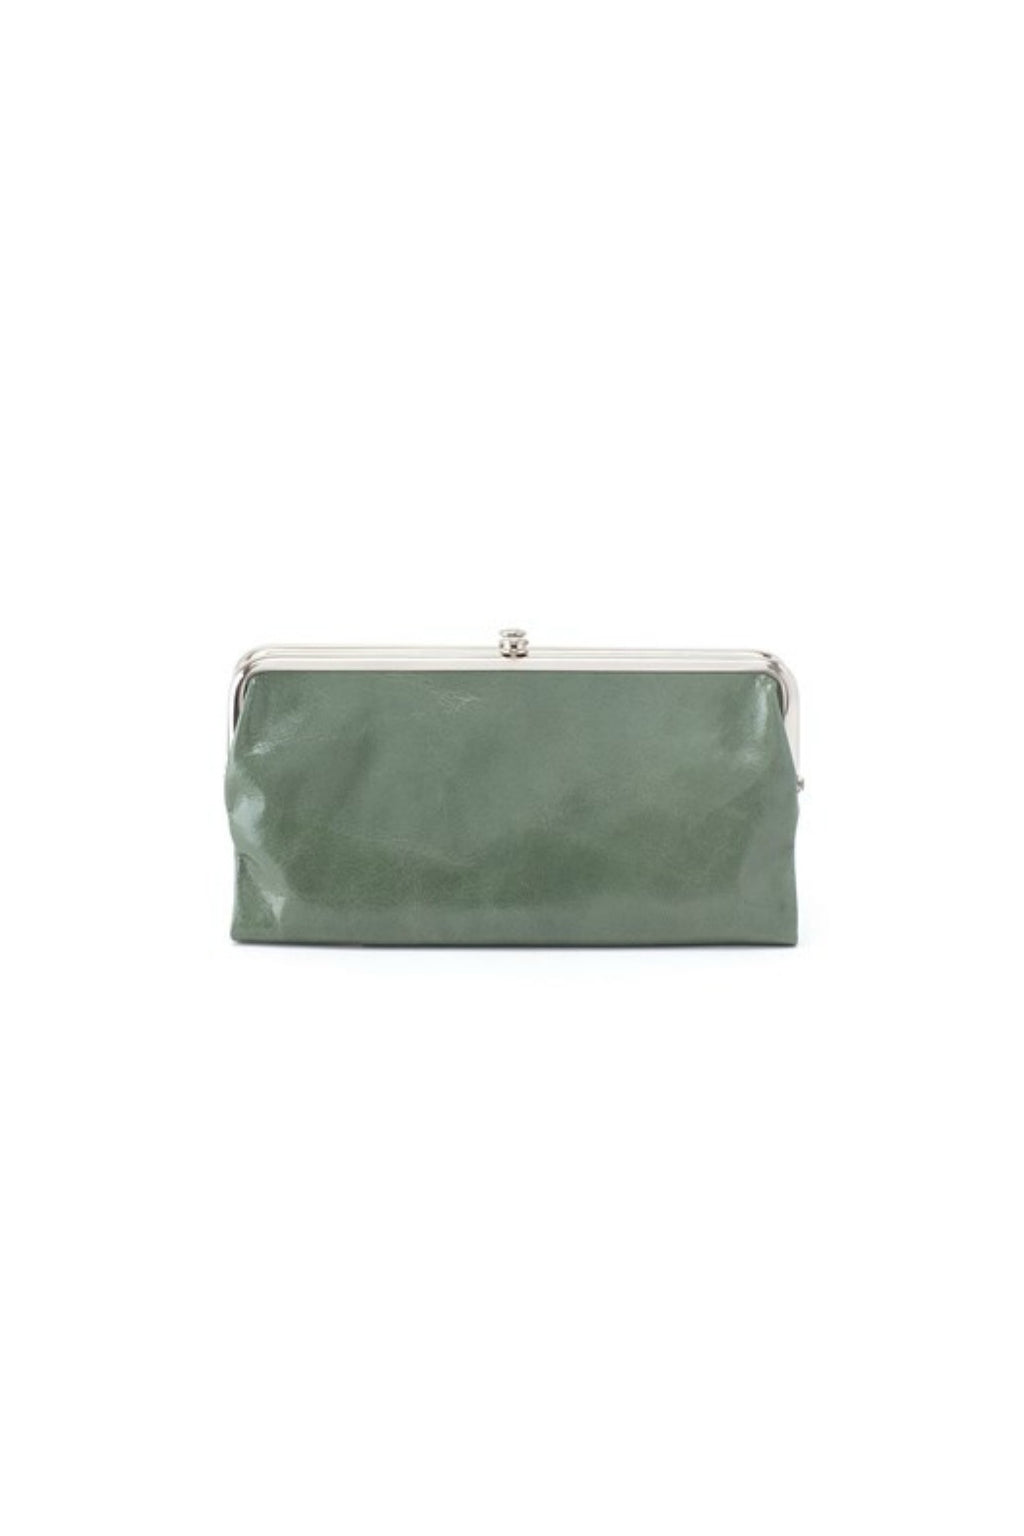 Hobo Lauren Wallet in Moss